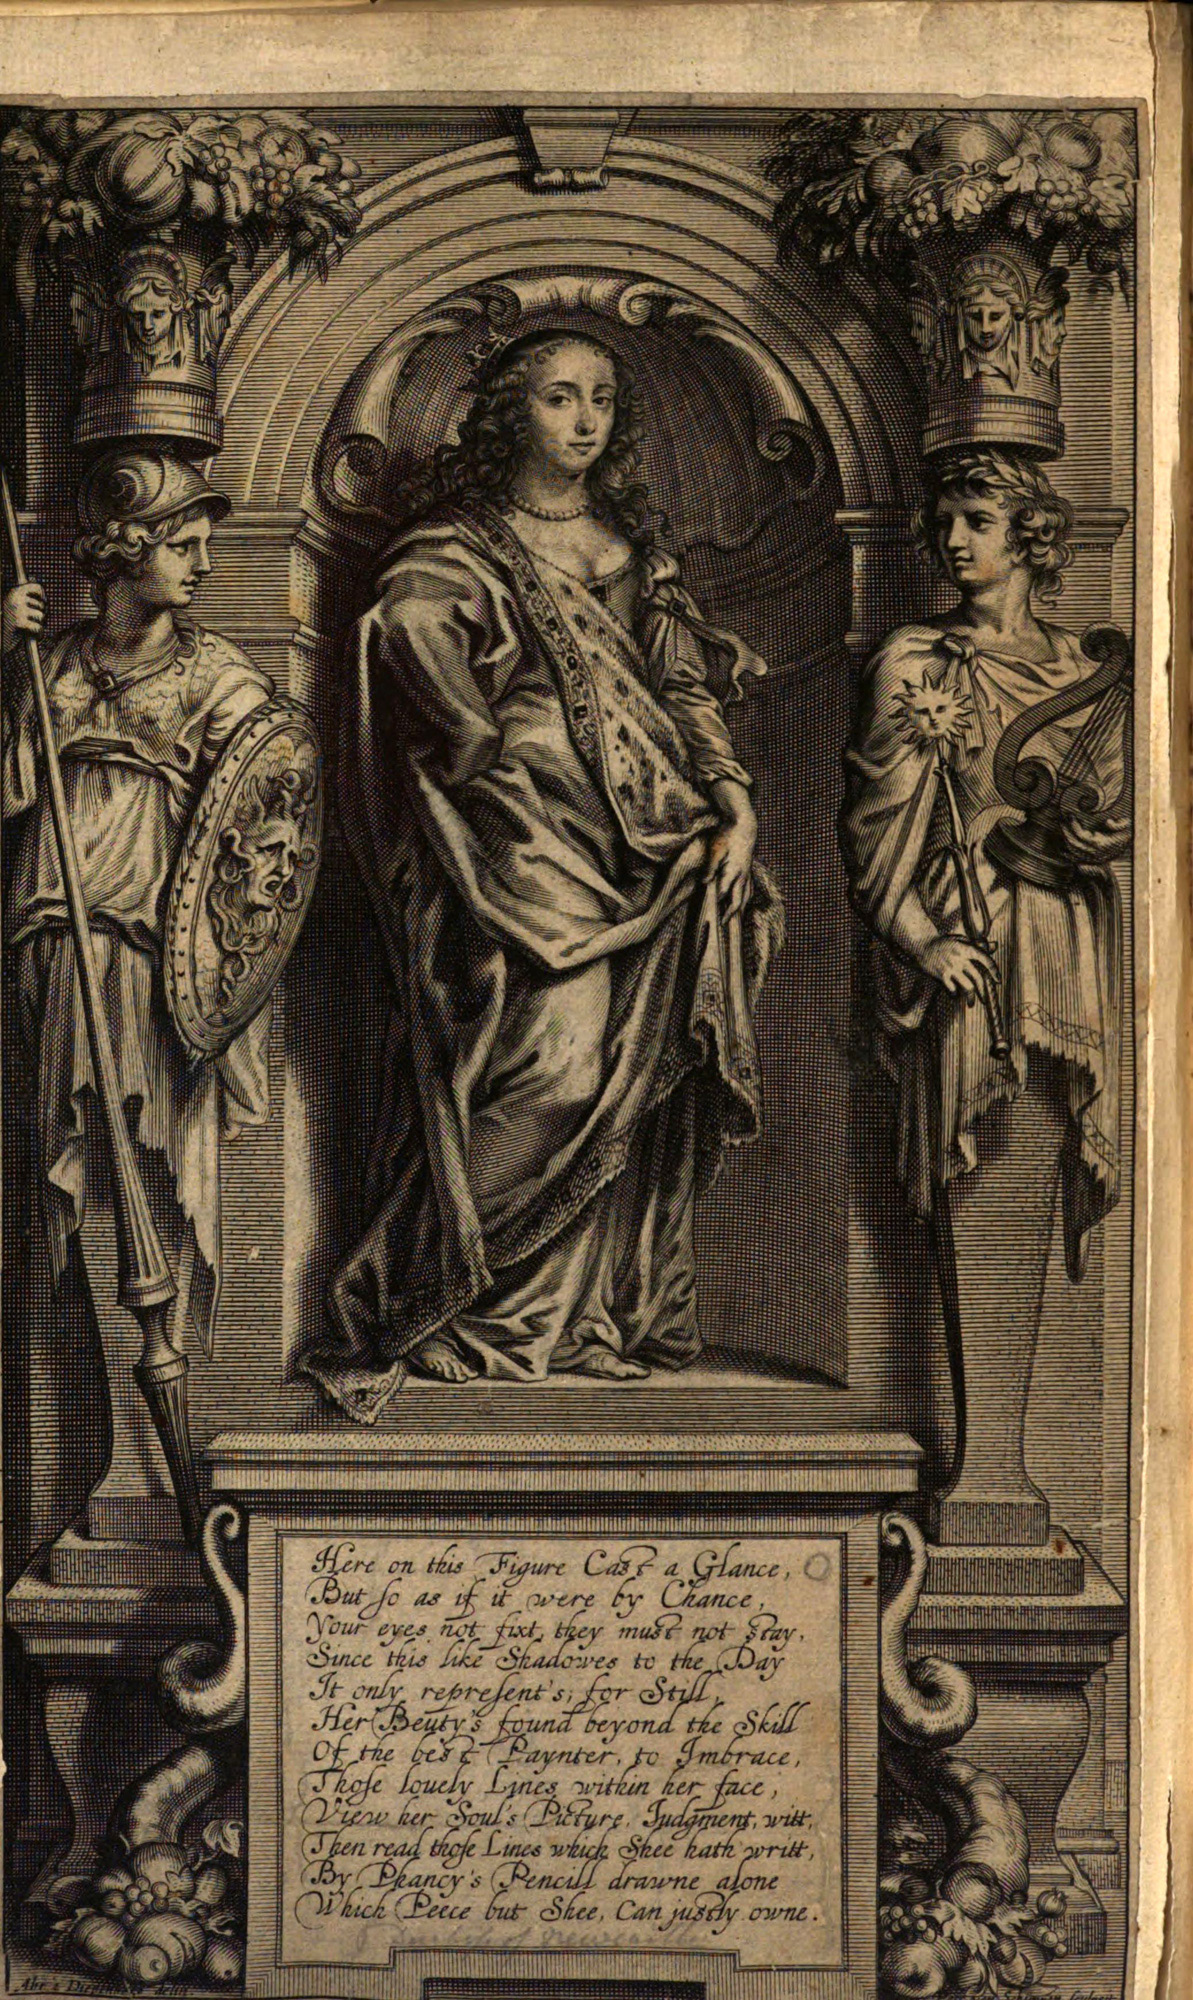 Margaret Cavendish's classical frontispiece